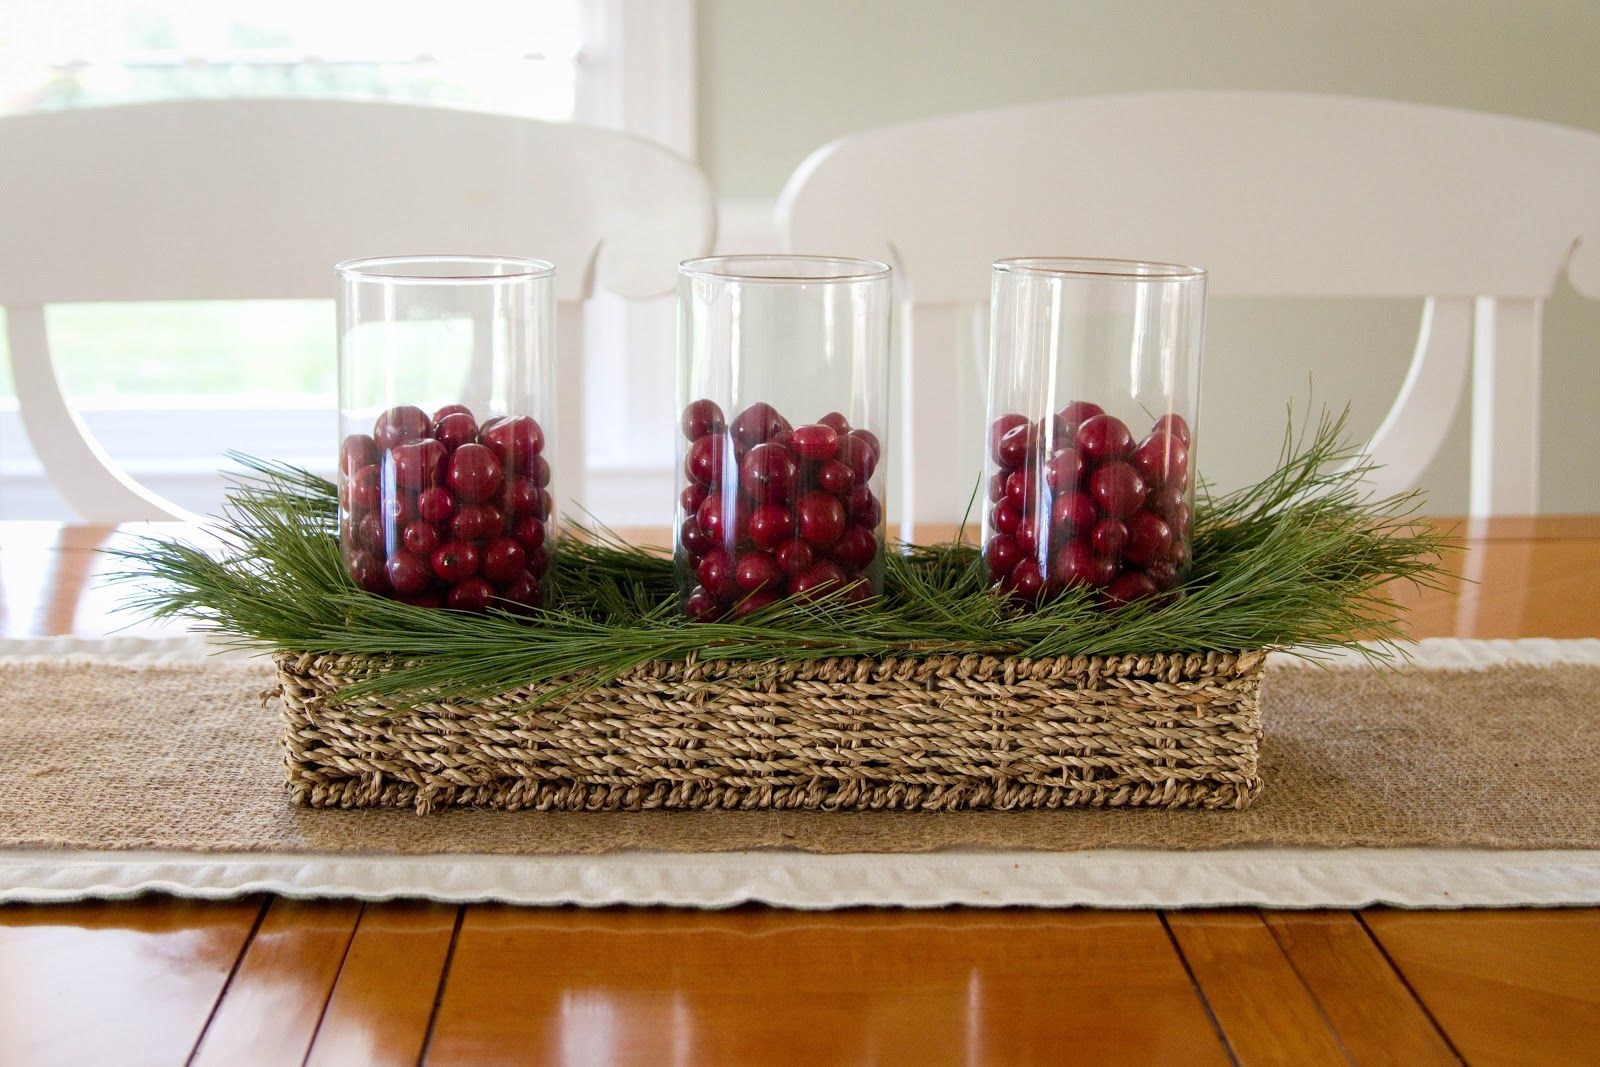 Decorating Your Kitchen Using Table Centerpieces Is Very Easy Description From Mykitcheninterior